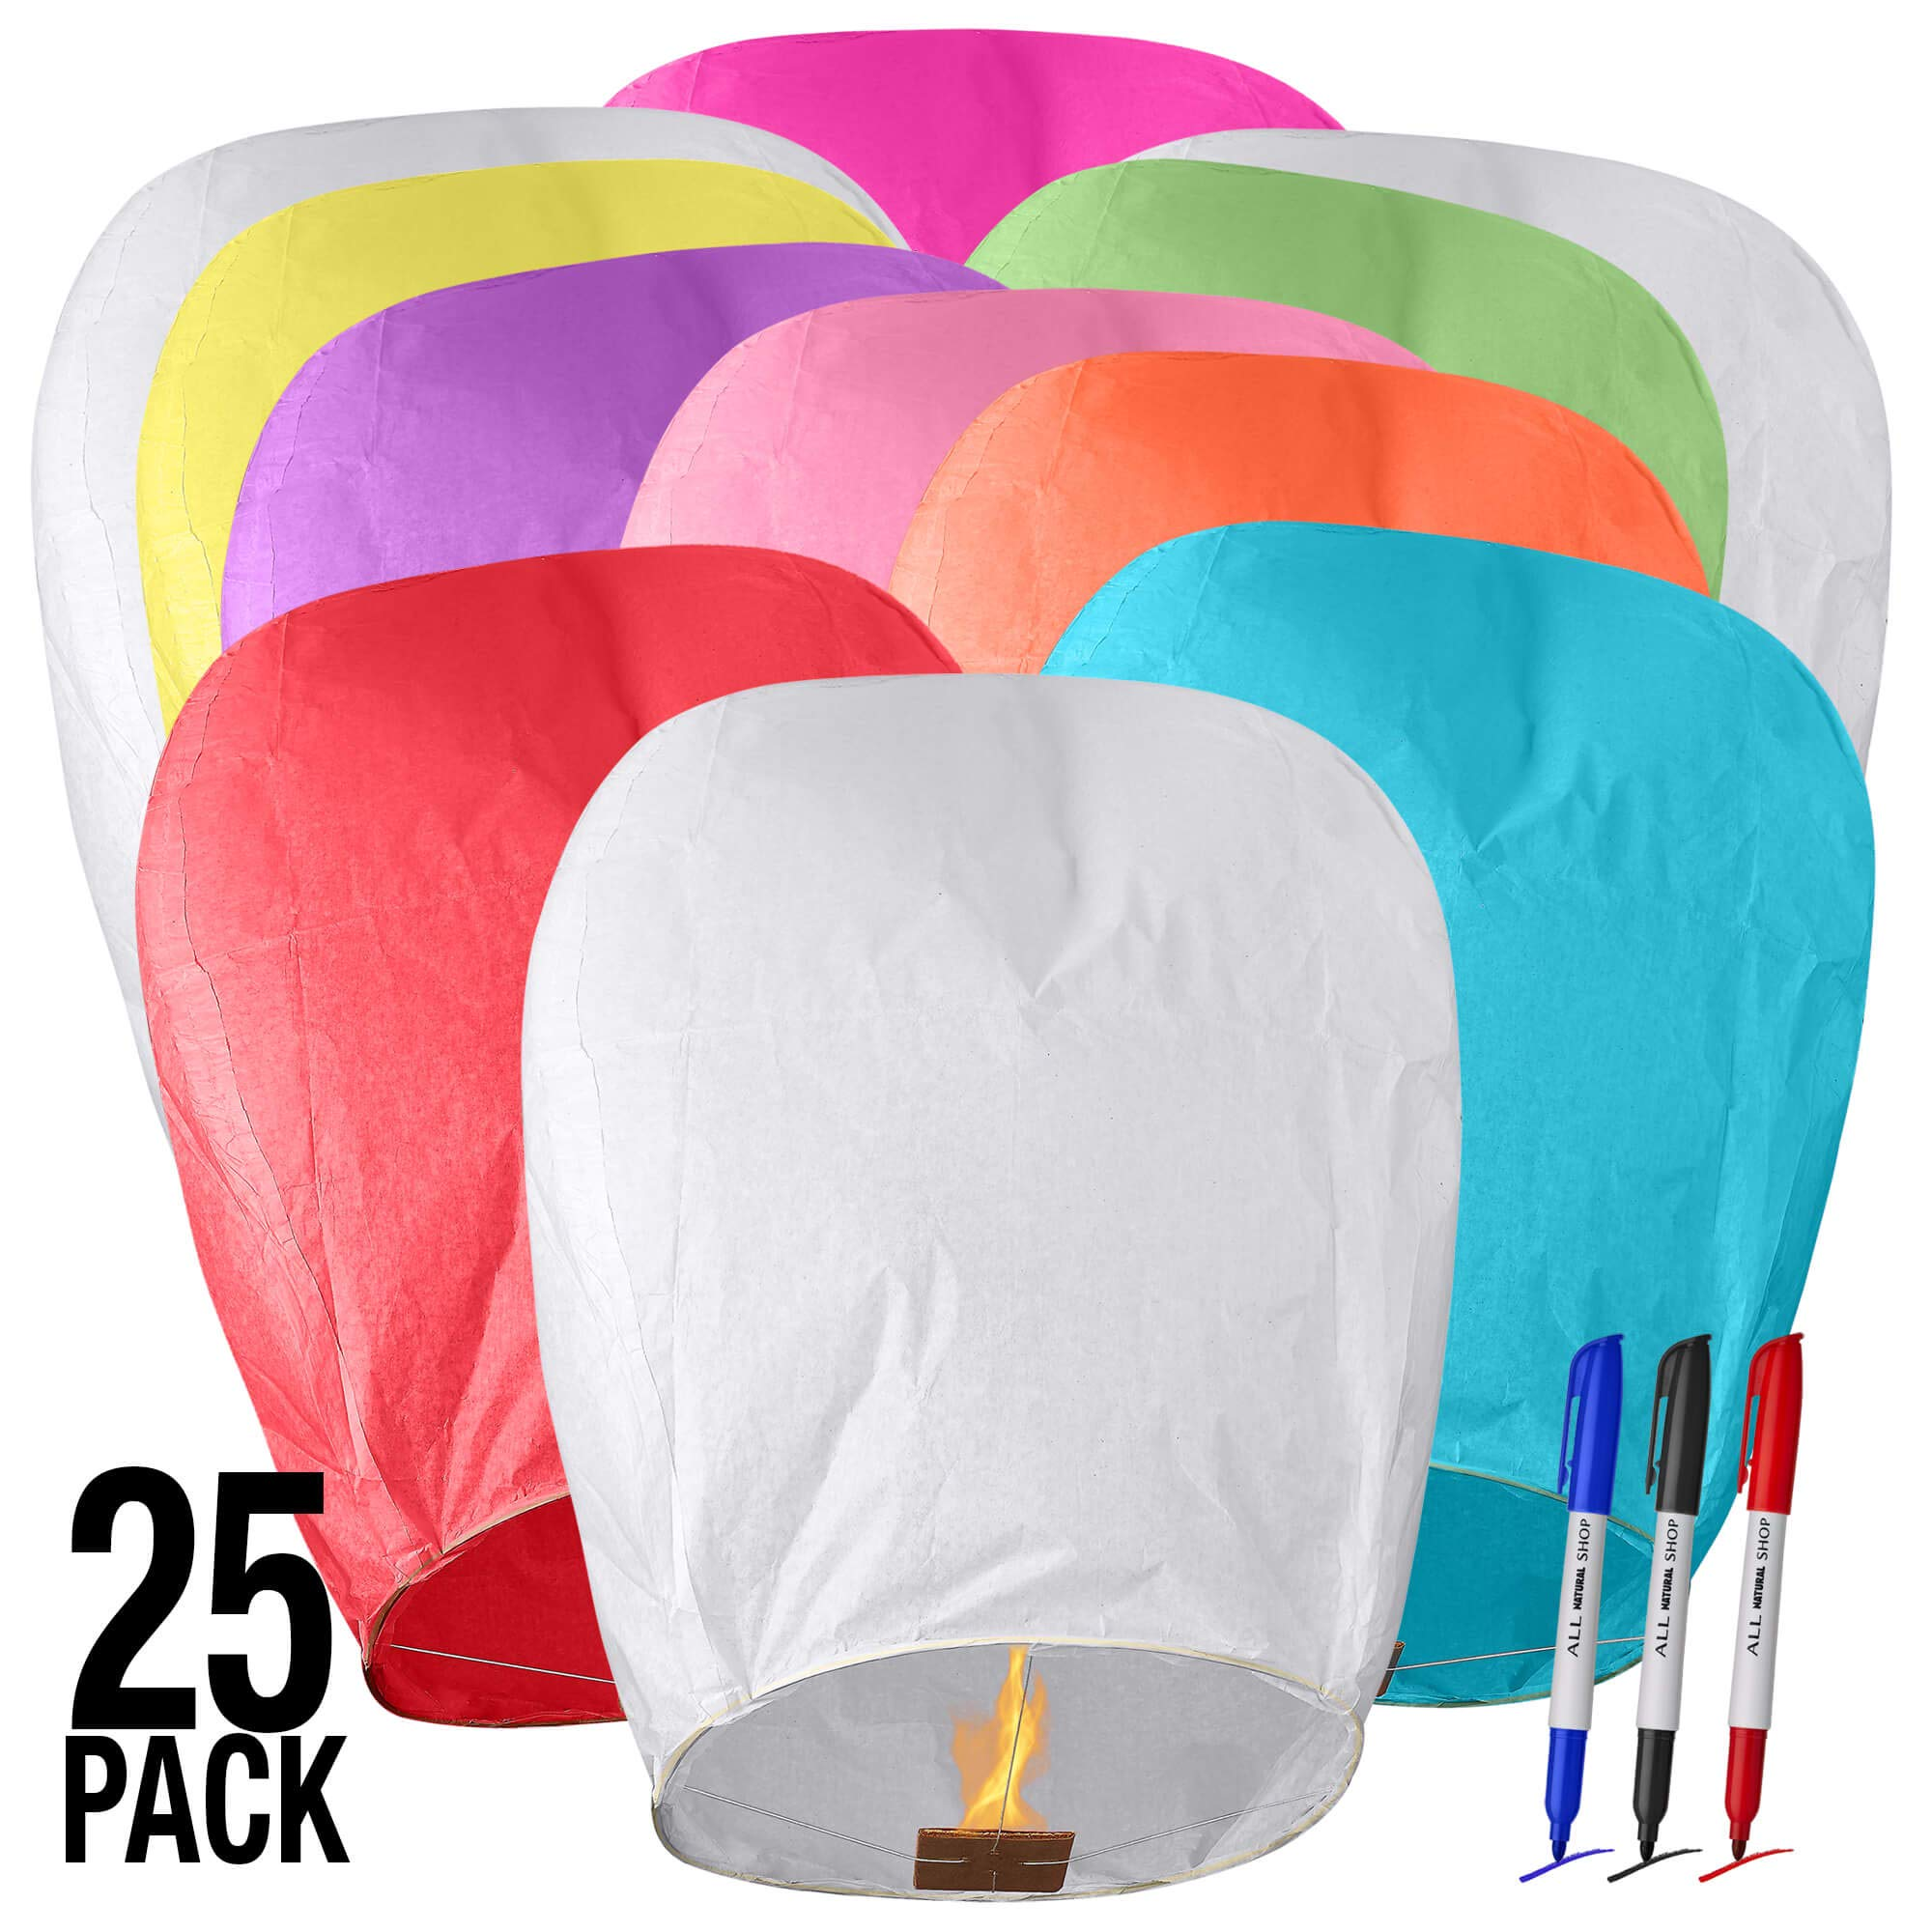 All Natural Shop 25 Pack Chinese Sky Lanterns - Color, Eco Friendly, 100% Biodegradable. Wire-Free Paper Japanese Prime Paper Sky Lantern To Release In Sky. by All Natural Shop